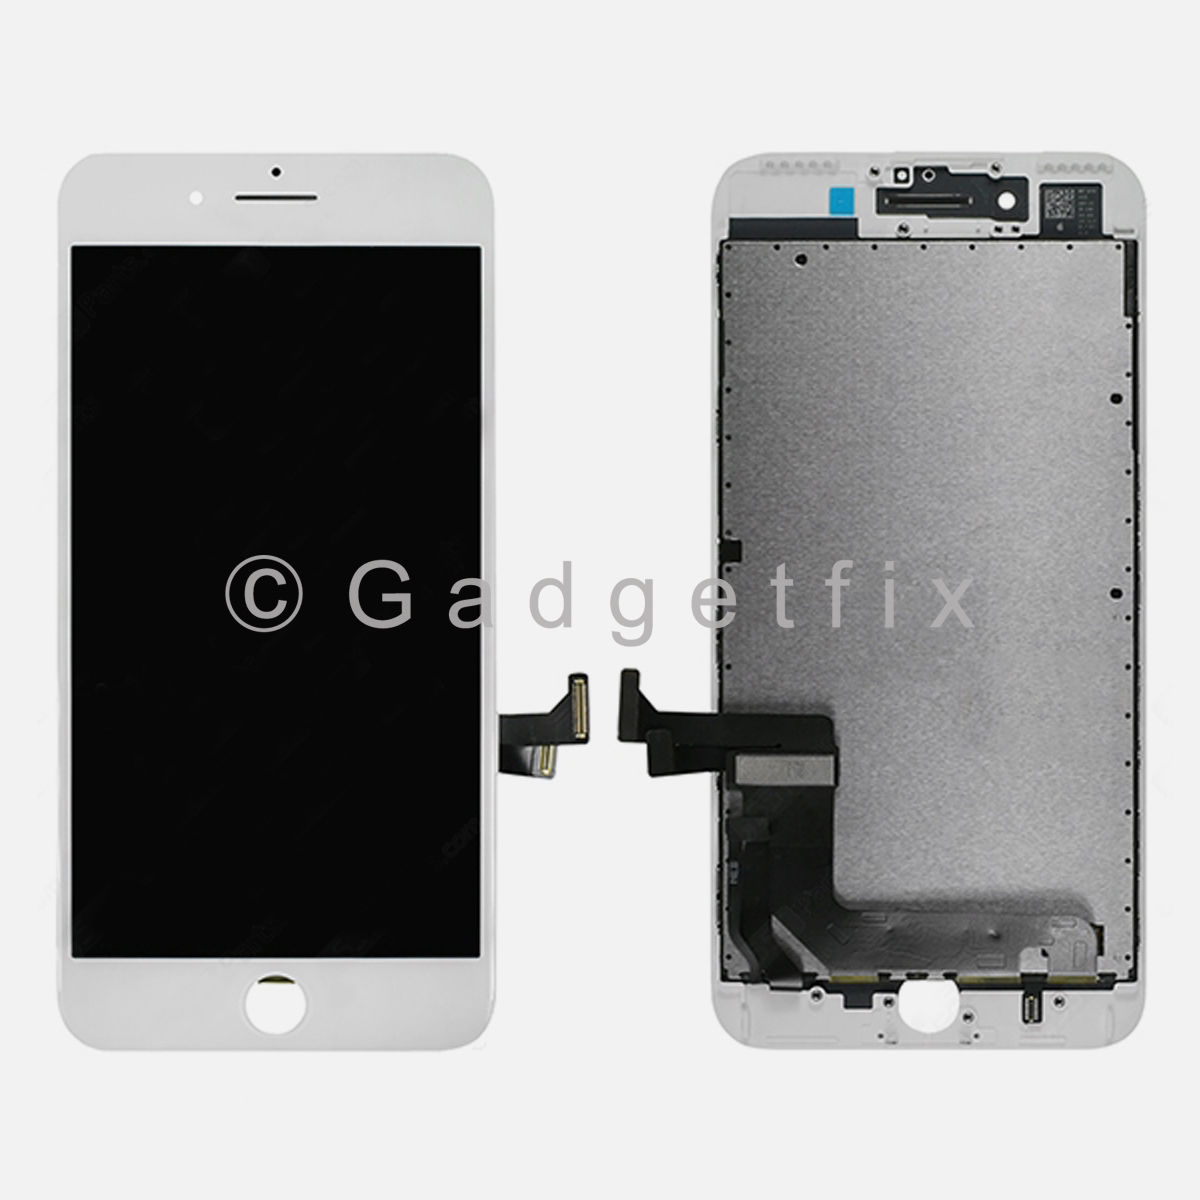 USA White iPhone 7 Plus LCD Screen Display Touch Screen Digitizer Panel Assembly